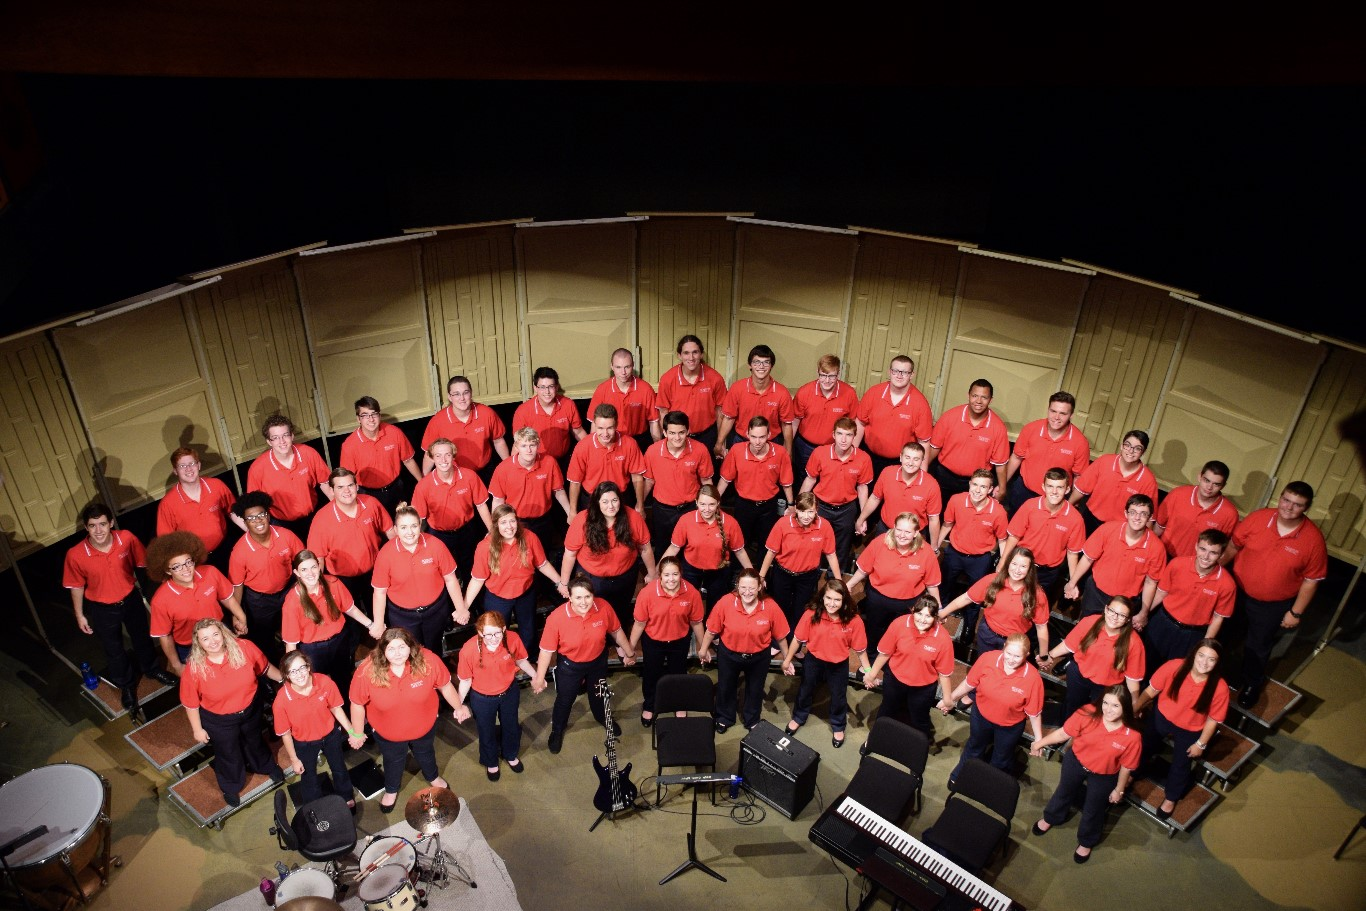 The Cardinal Chorale